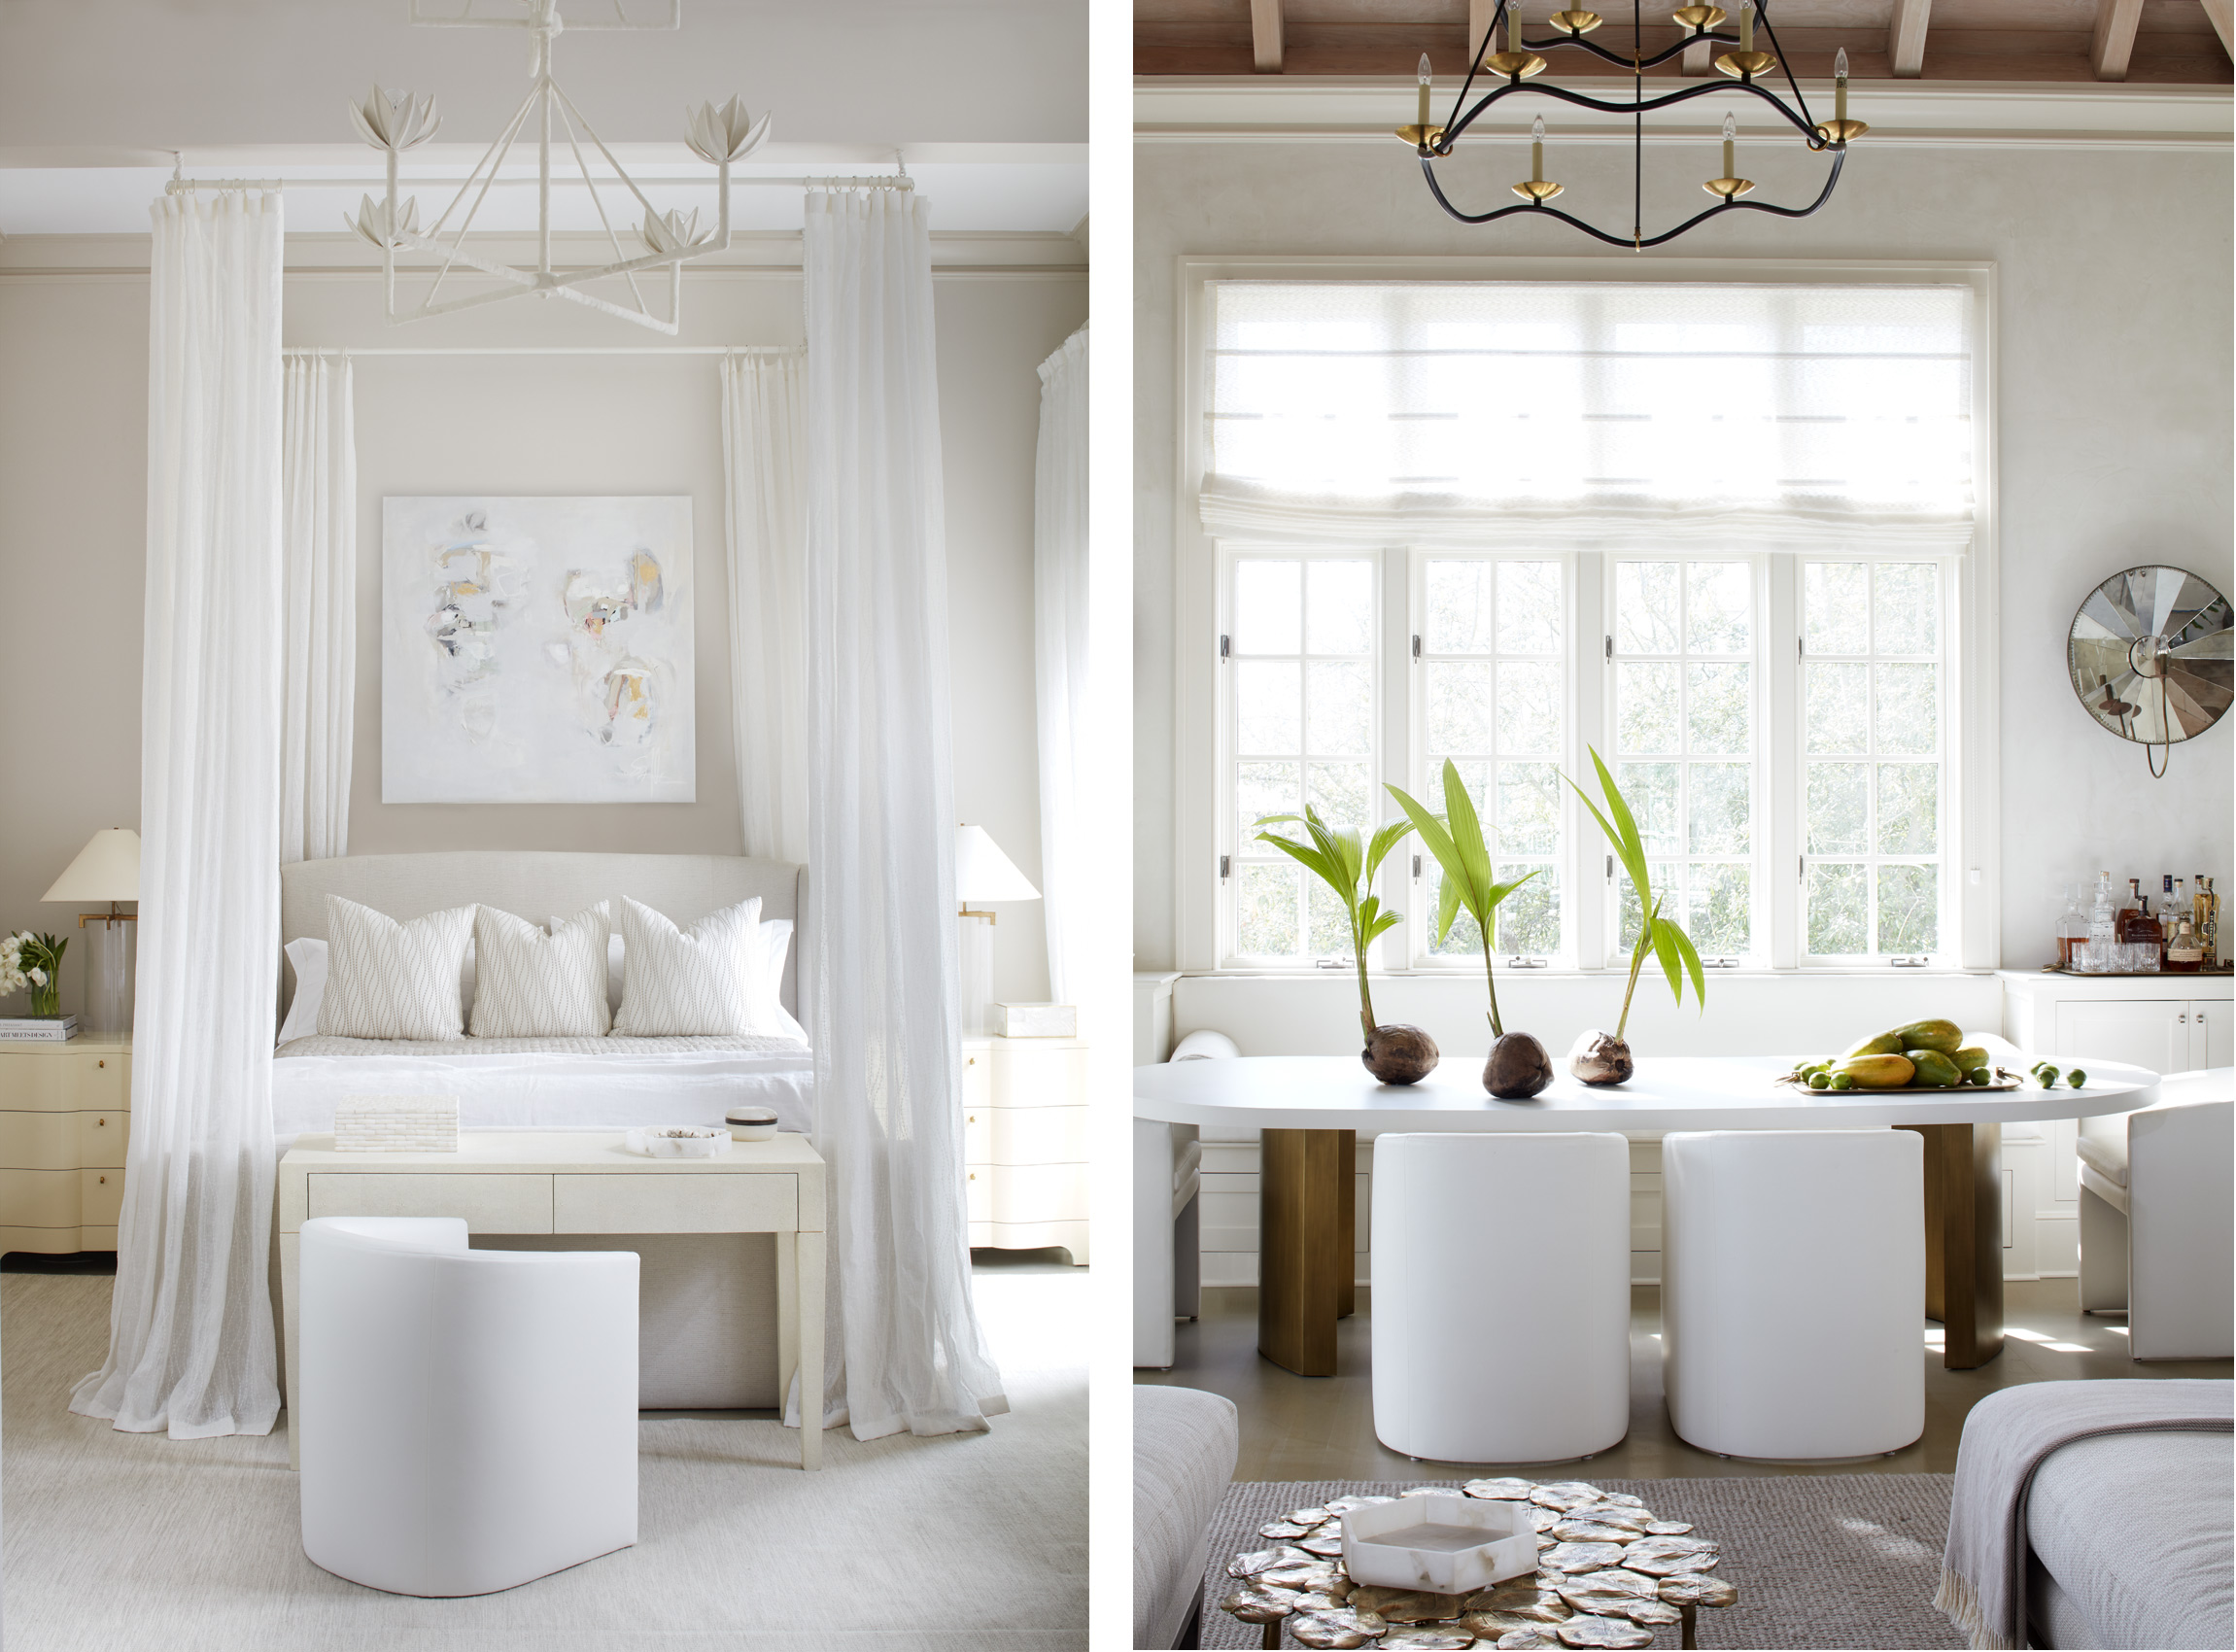 Mali-Azima-Melanie-Turner-Interiors-Rosemary-Beach-White